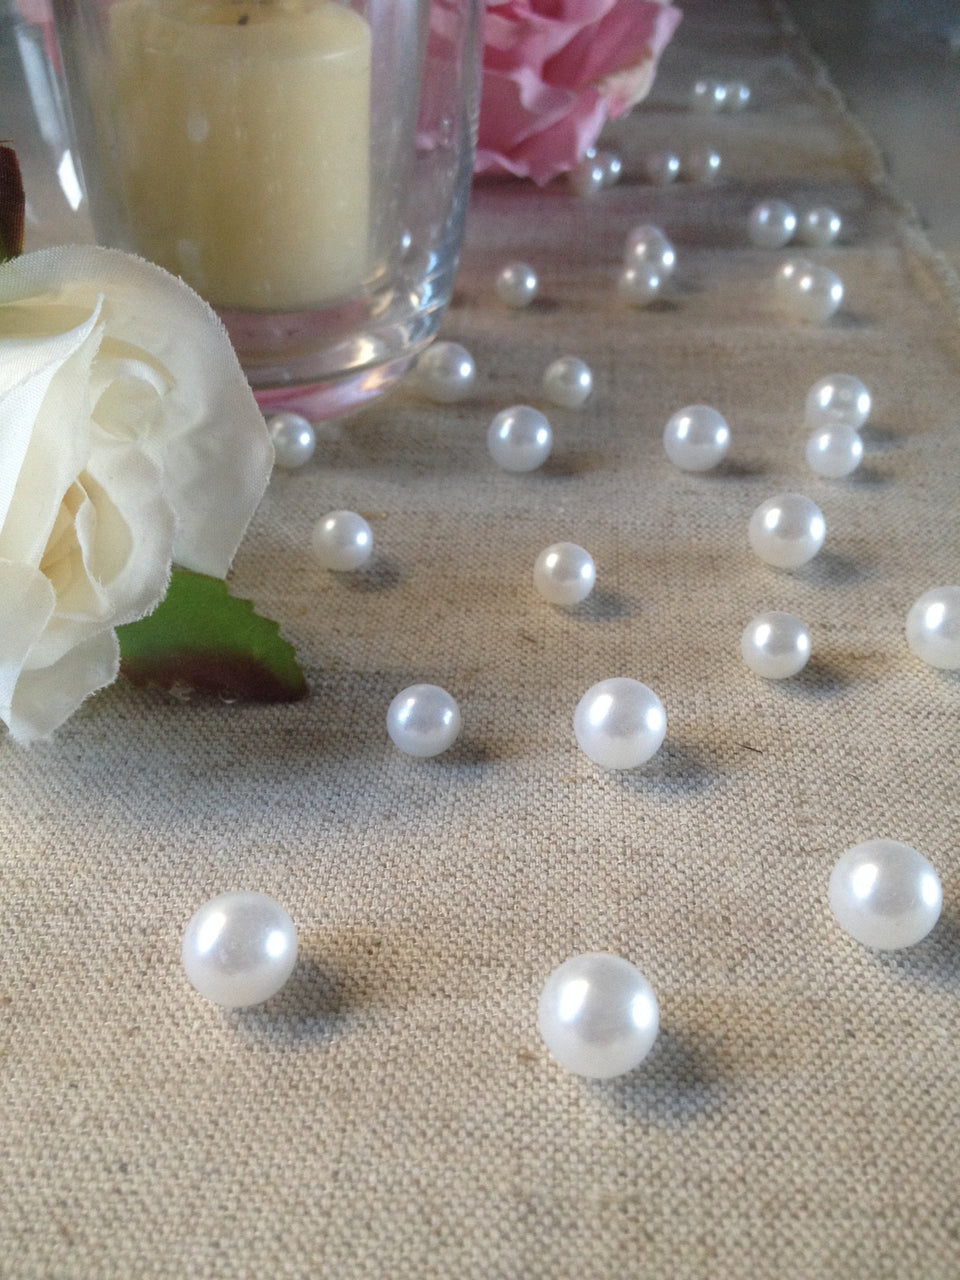 Vintage Table Pearl Scatters White Pearls For Wedding, Parties, Special Events Decor Table Confetti